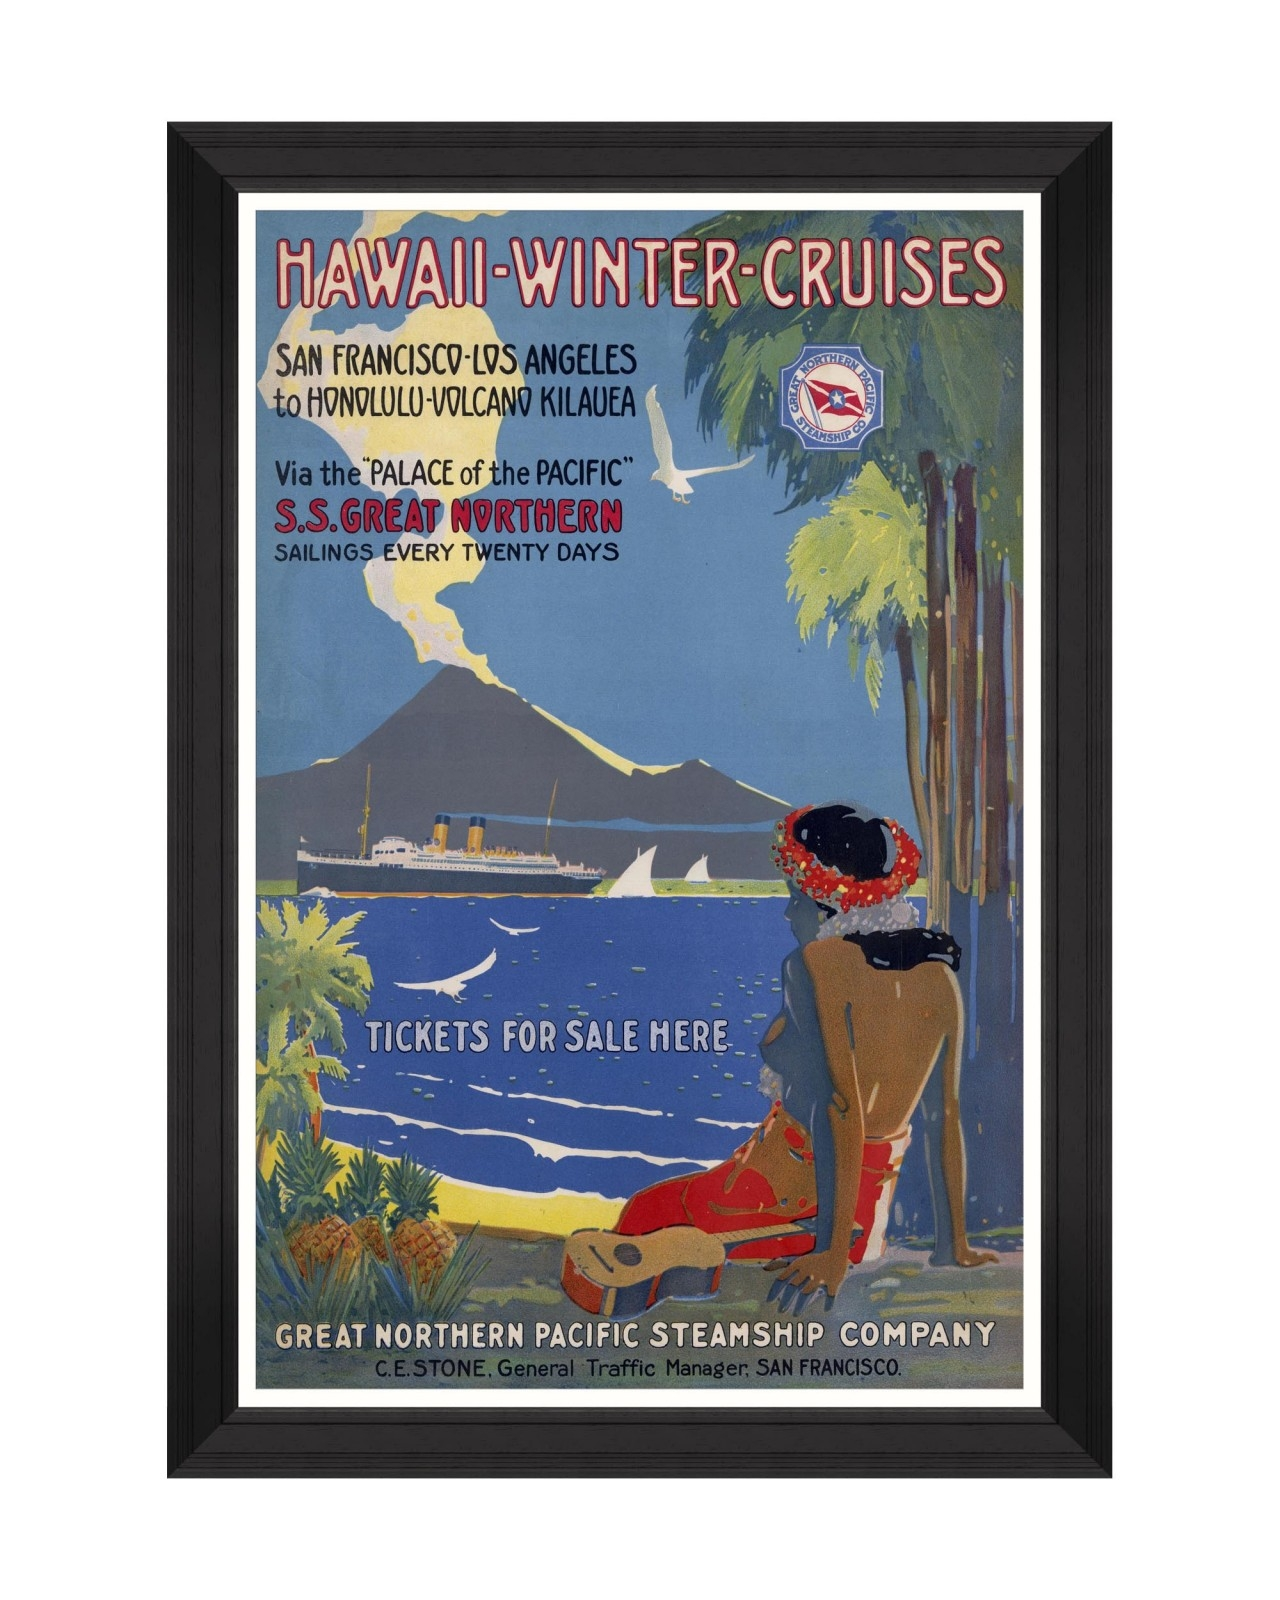 Tablou Framed Art Caribbean Travels - Hawaii Winter Cruises, 60 x 90 cm imagine